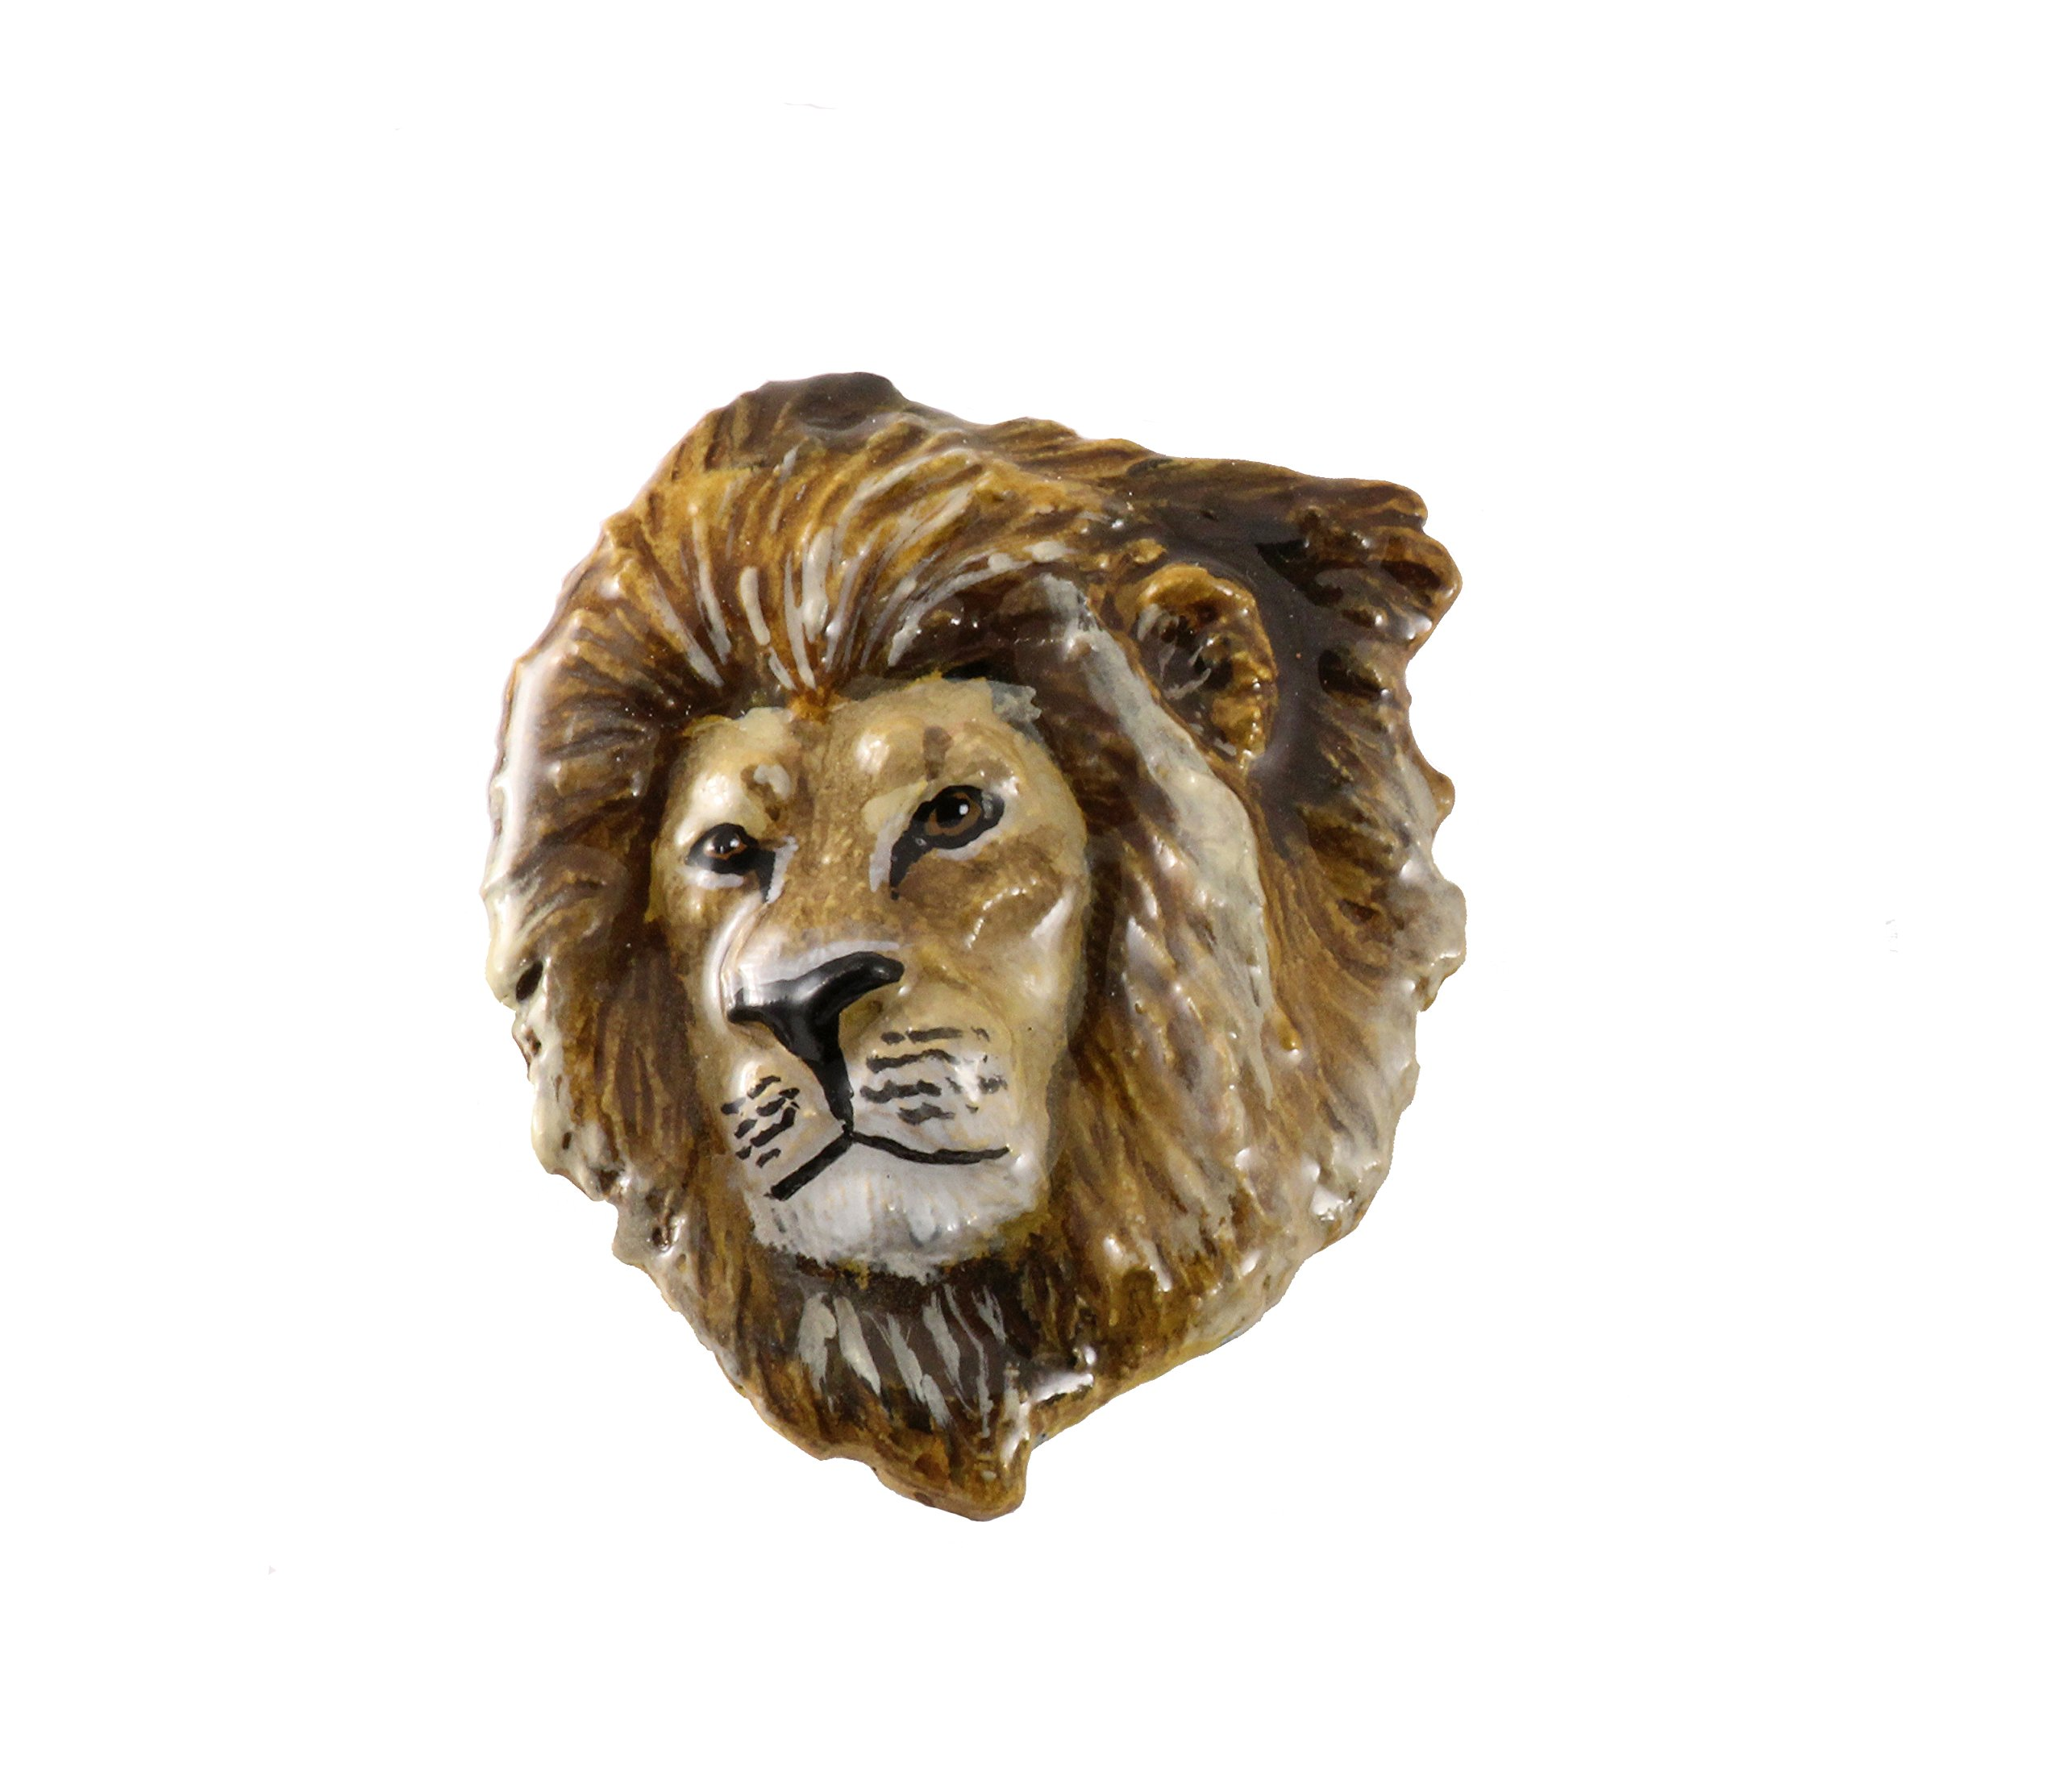 Creative Pewter Designs Pewter Lion Head, Handcrafted Lapel Pin Brooch, Hand Painted, MP102PR